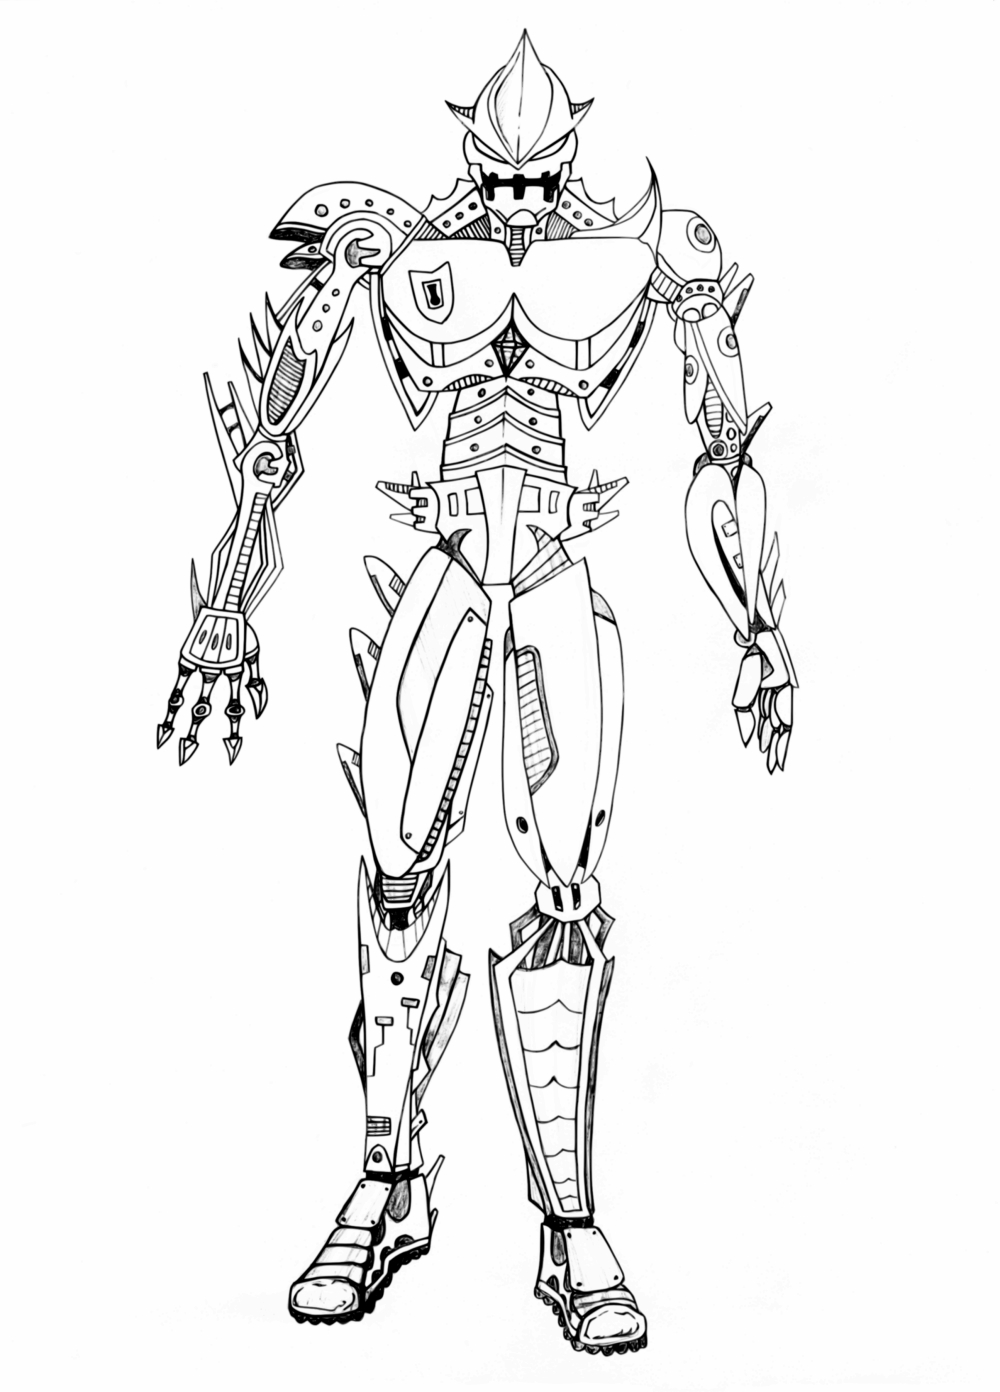 Line Art Robot : New robot line art by smd on deviantart